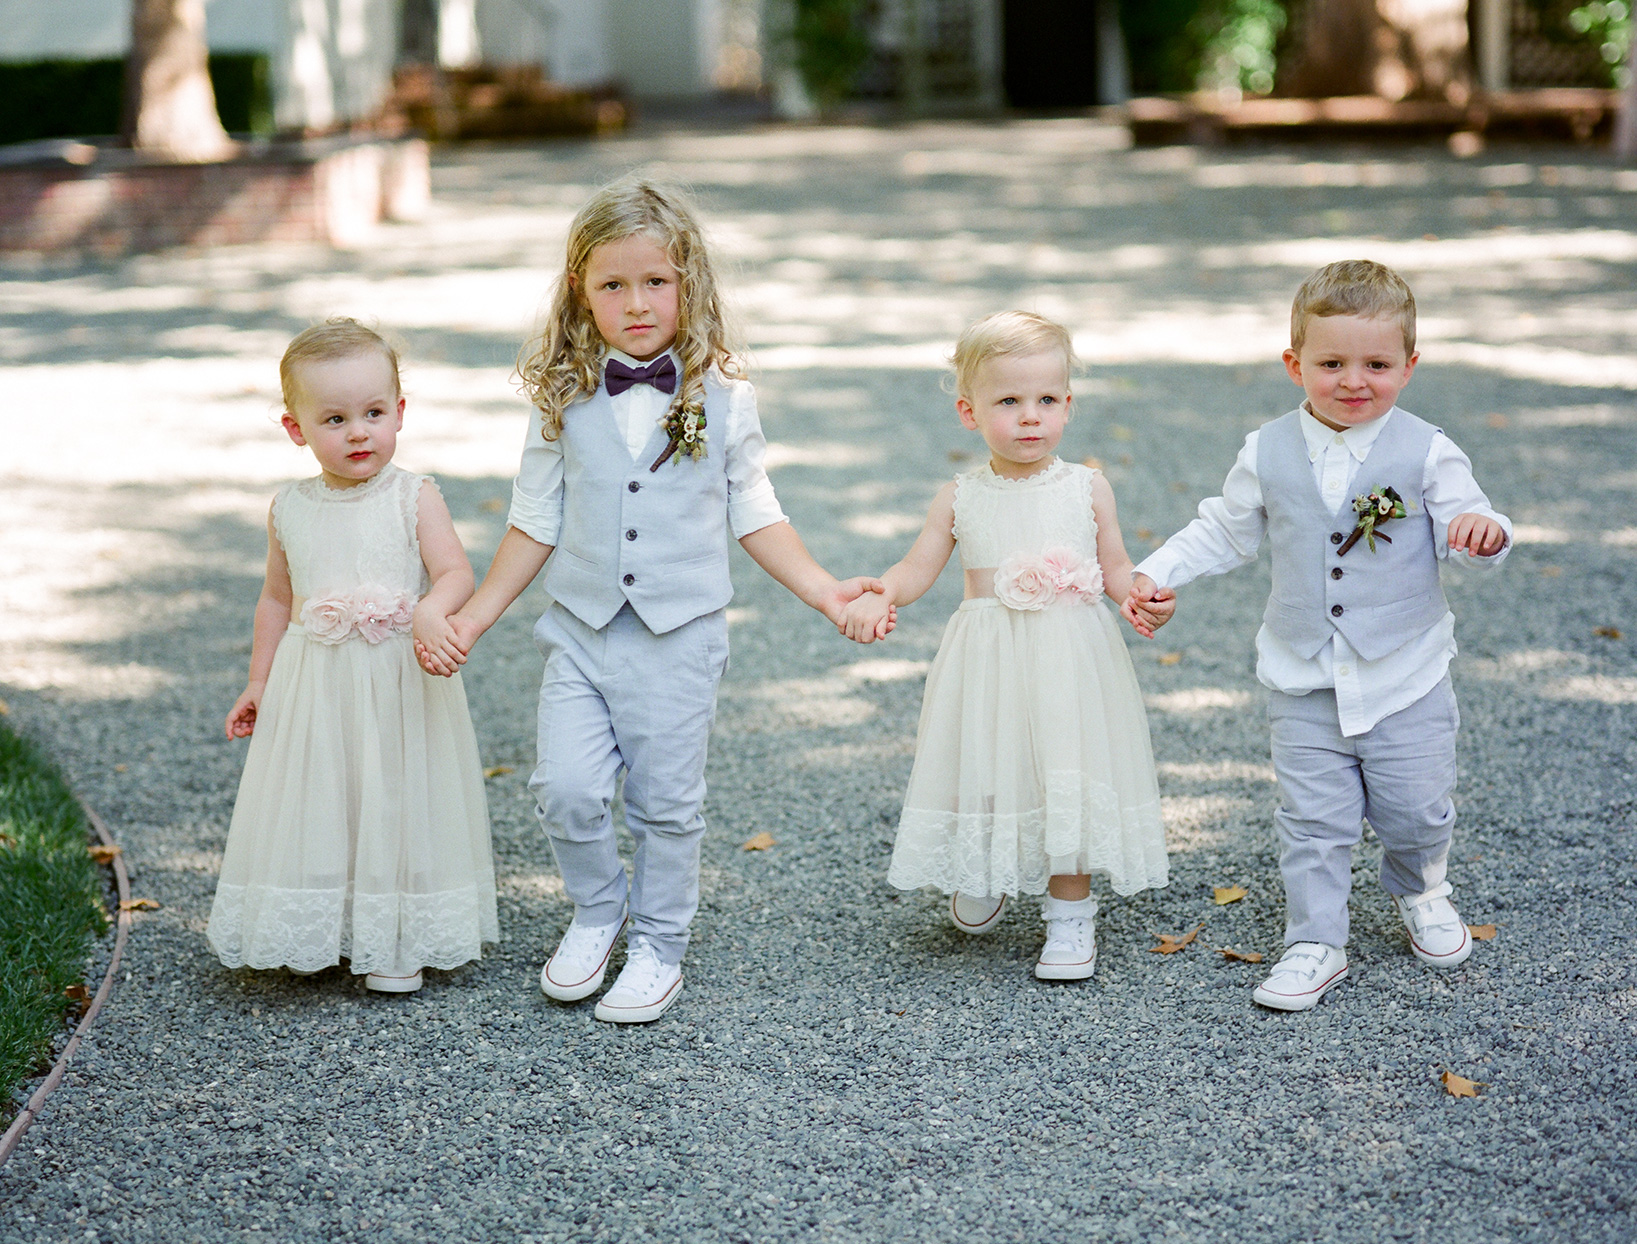 flower girls and ring bearers walking together down gravel road